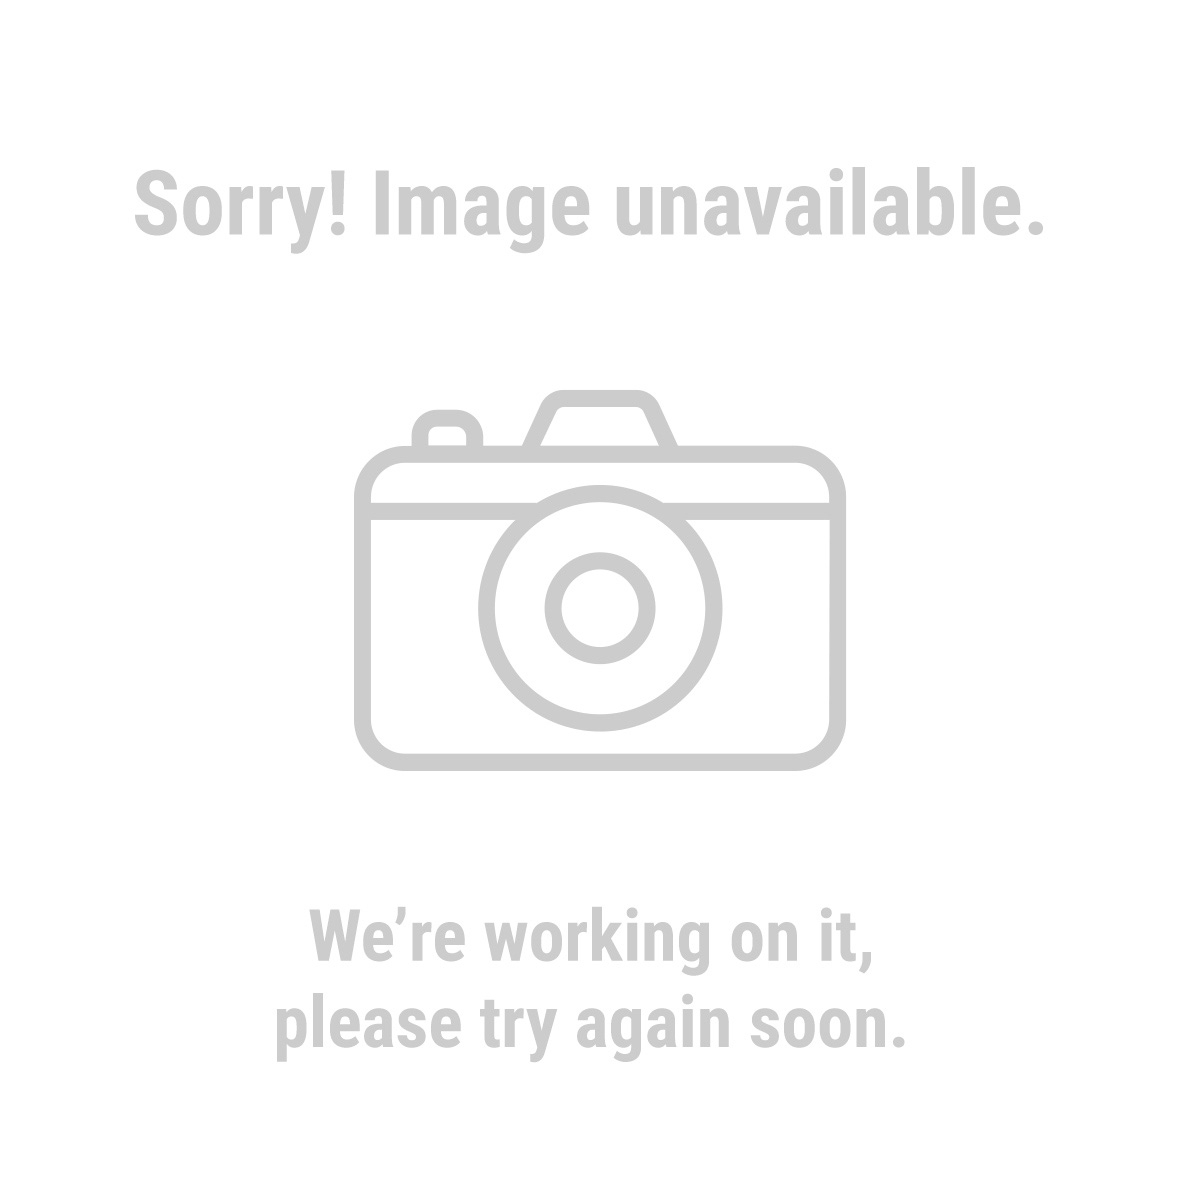 96358 Desktop Magnifier with LED Lamps